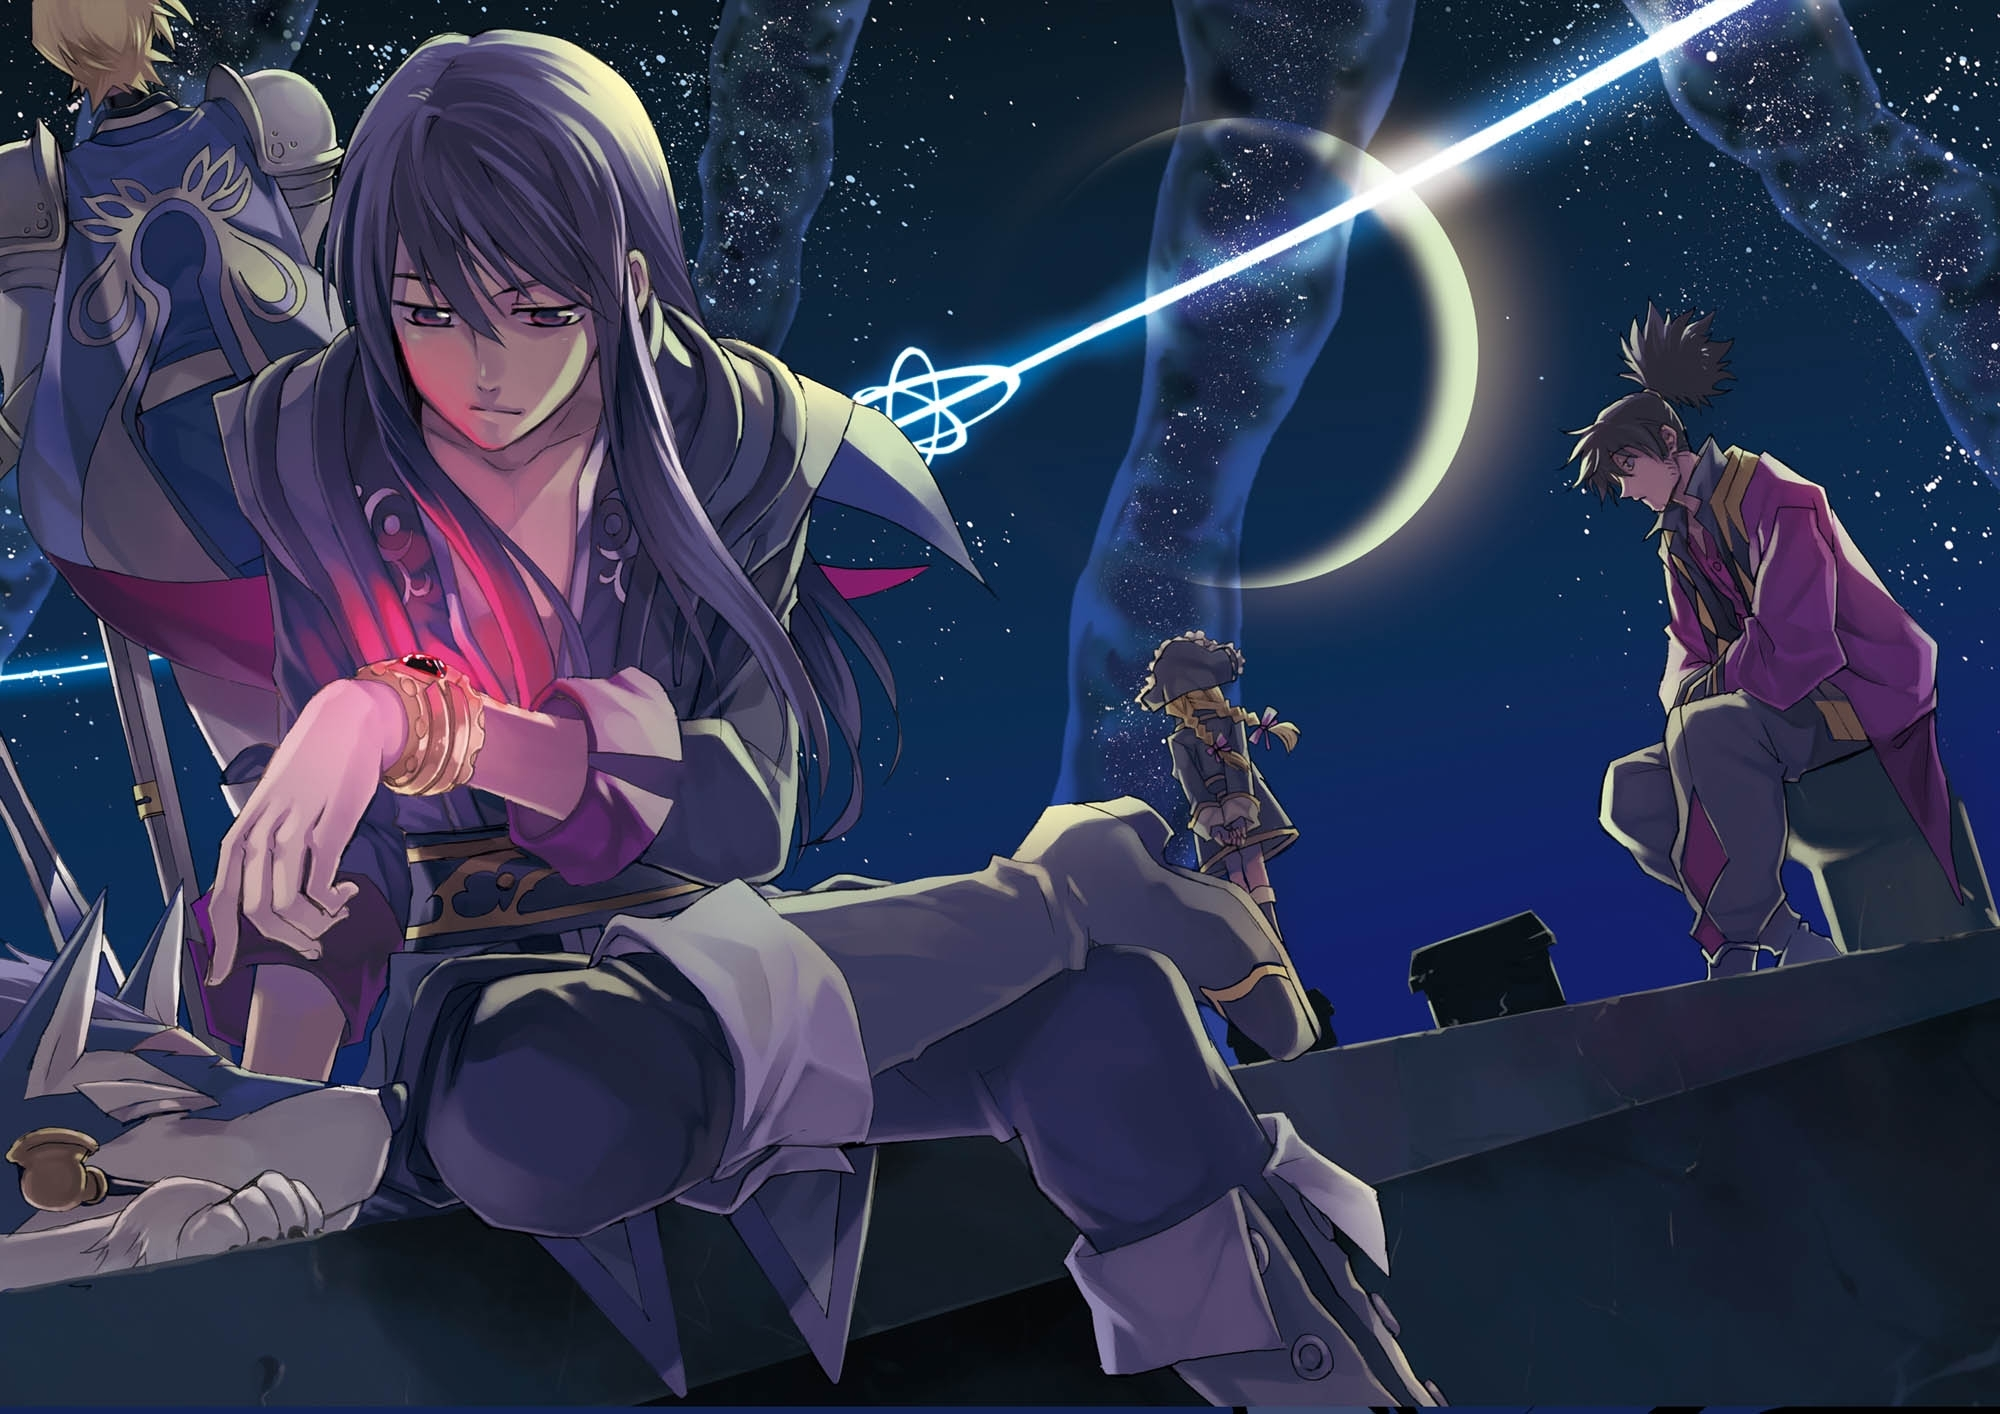 5 tales of vesperia hd wallpapers | background images - wallpaper abyss